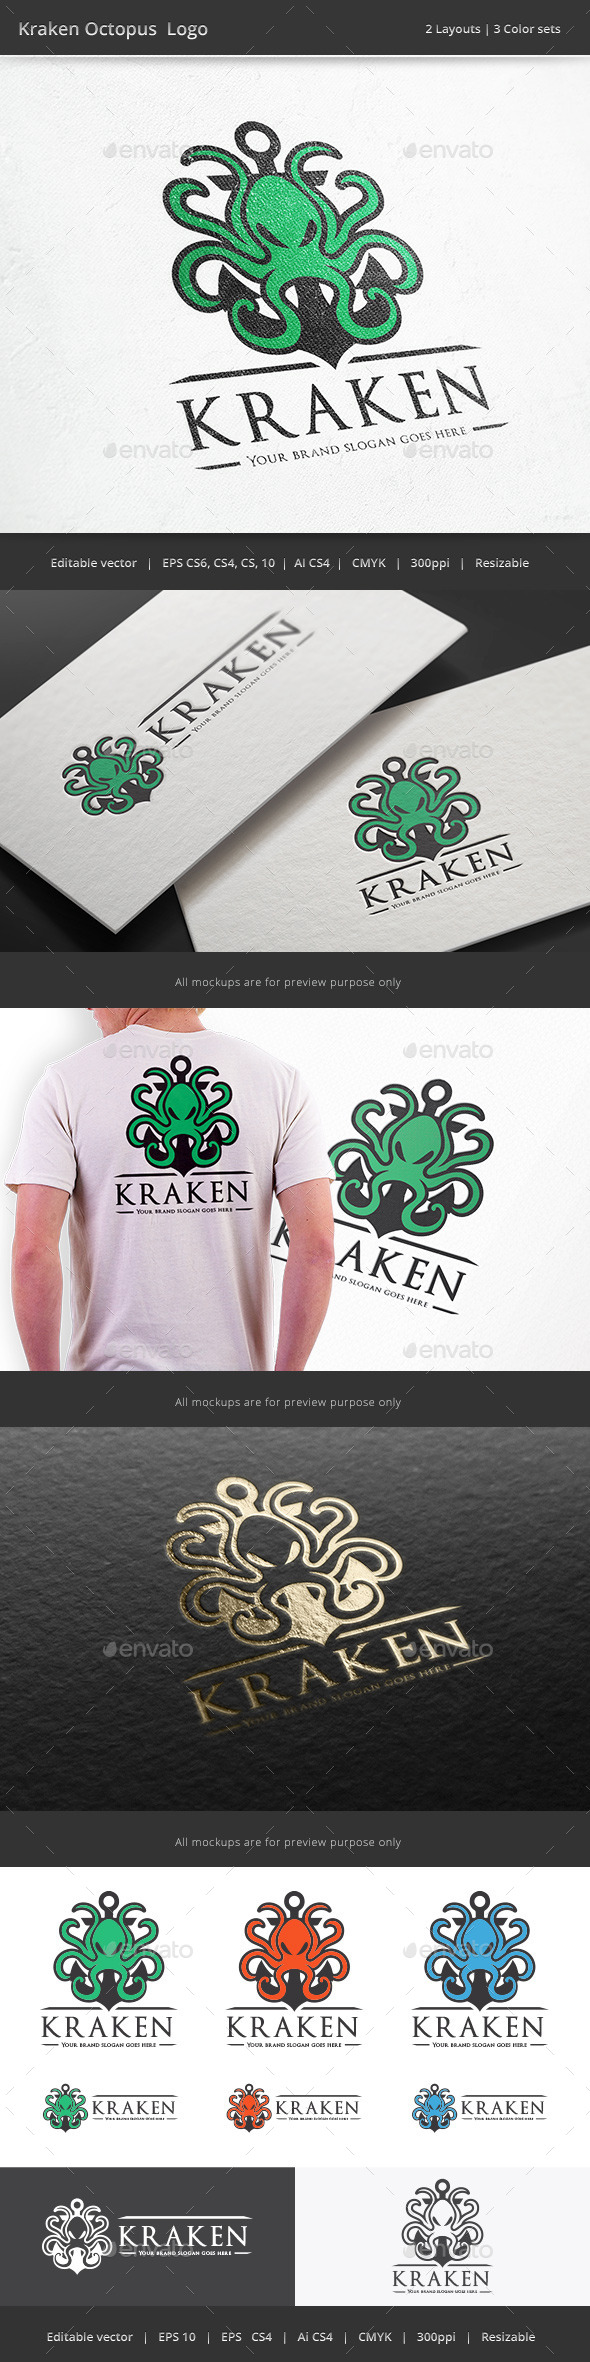 Kraken Octopus - Animals Logo Templates